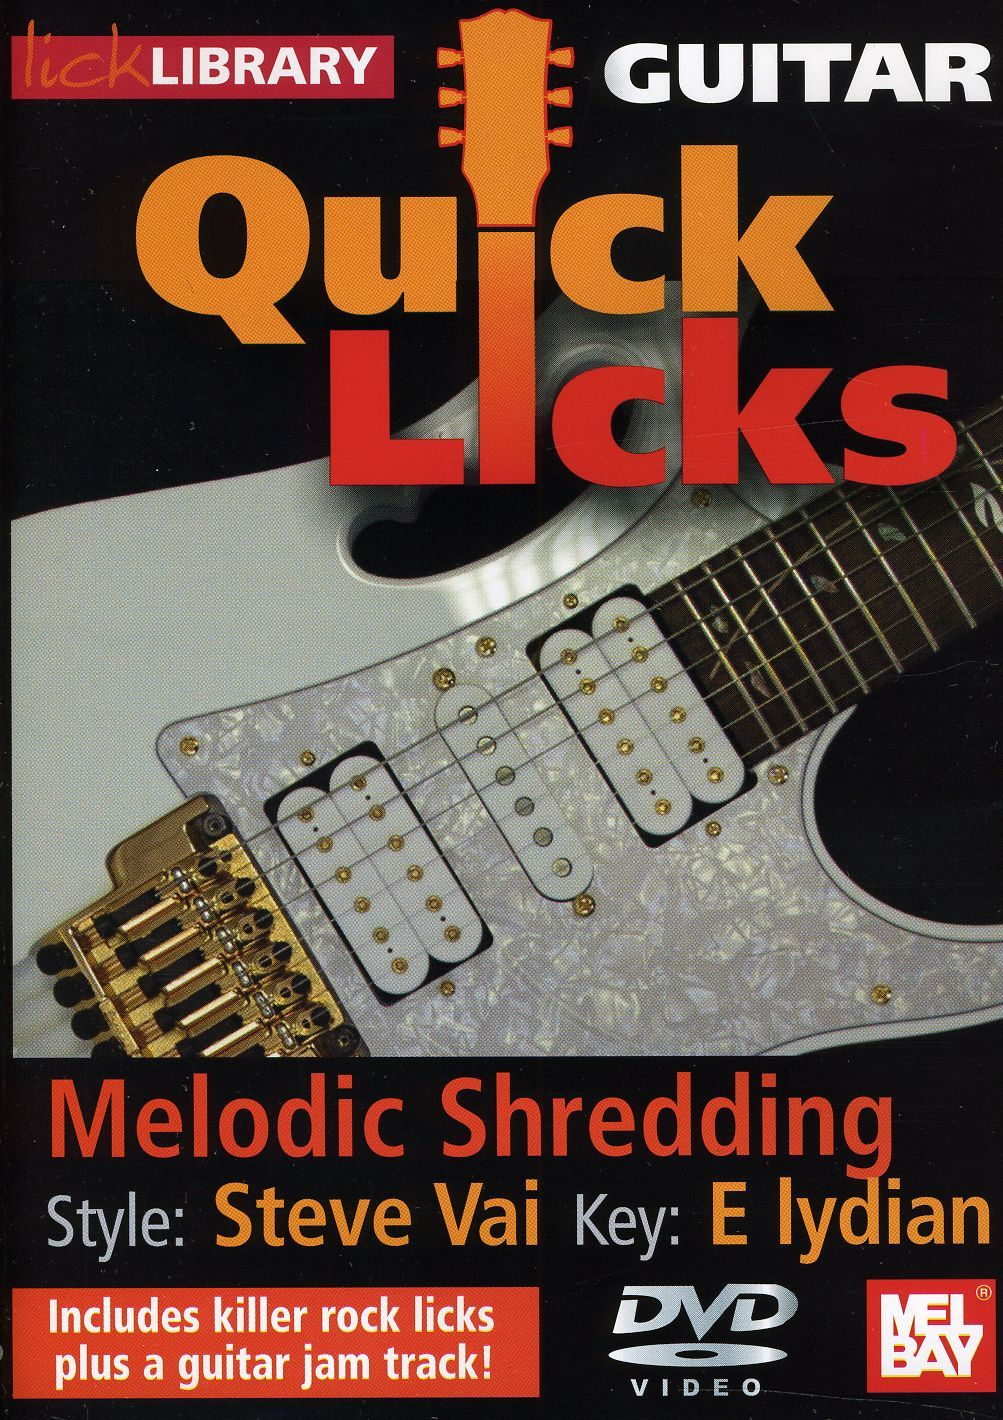 library track lick backing